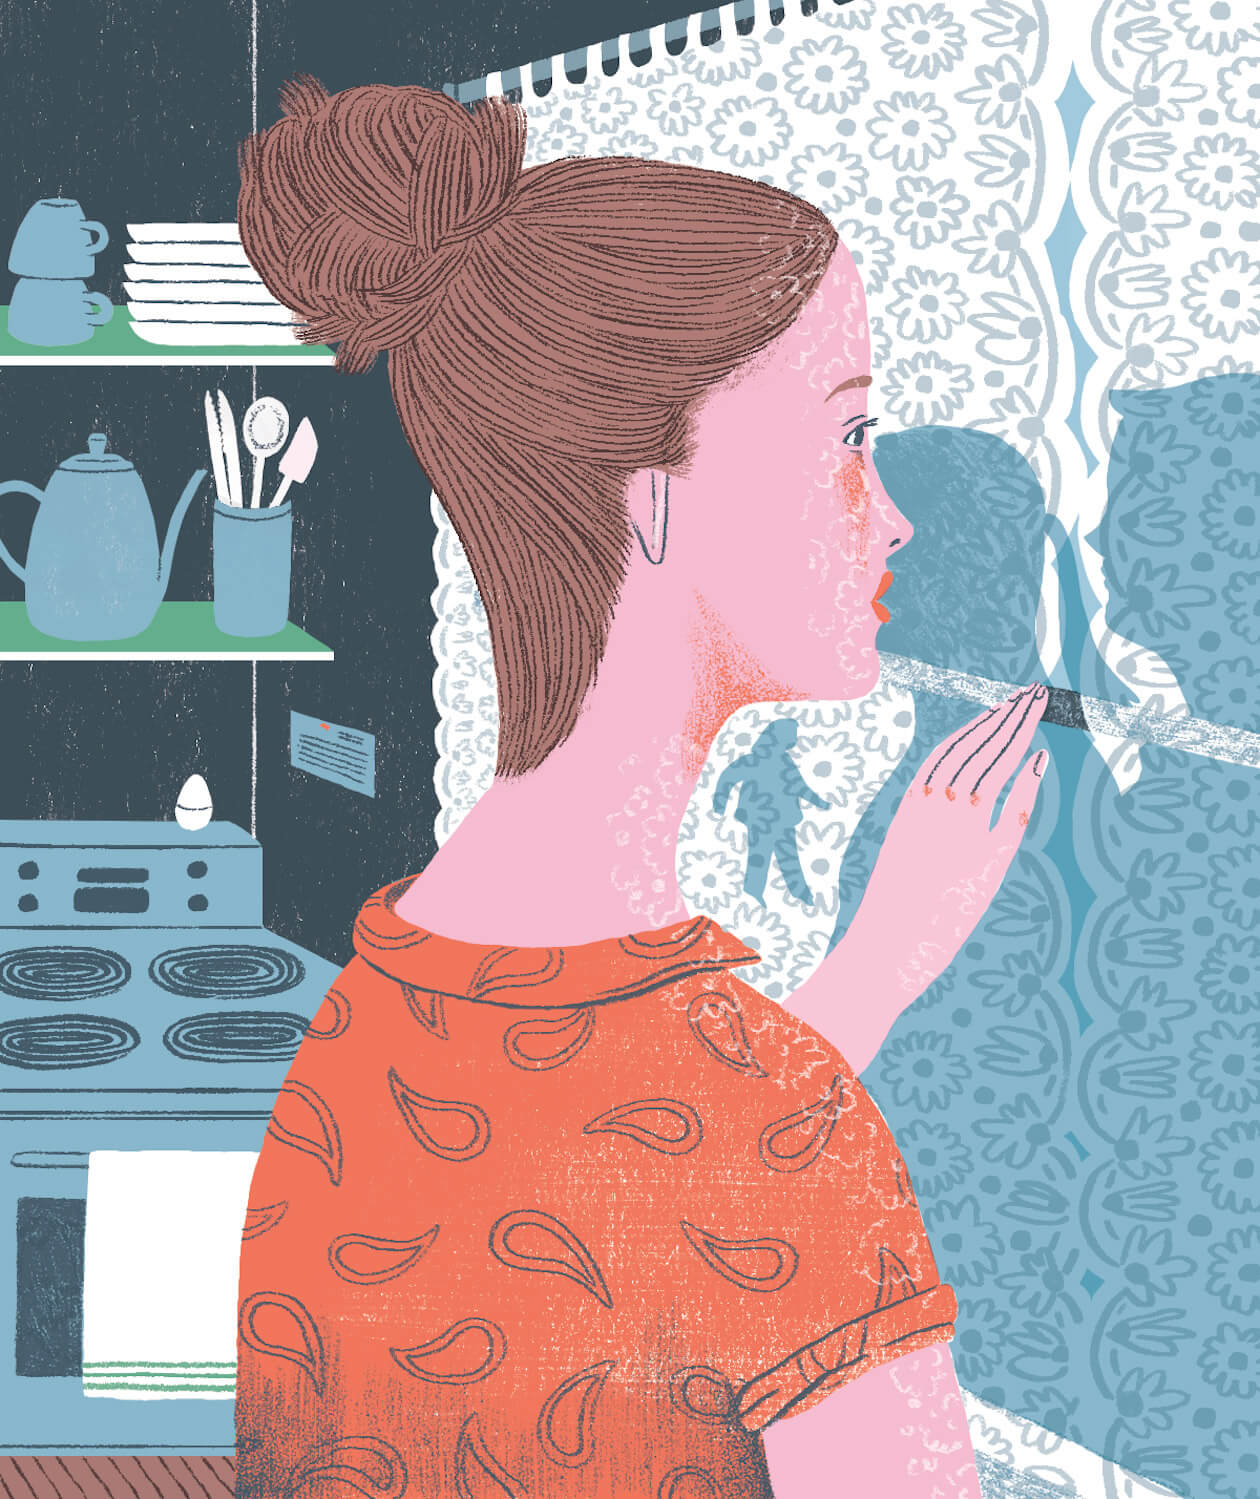 Illustration of a Woman Looking at Shadows on the Kitchen Wall